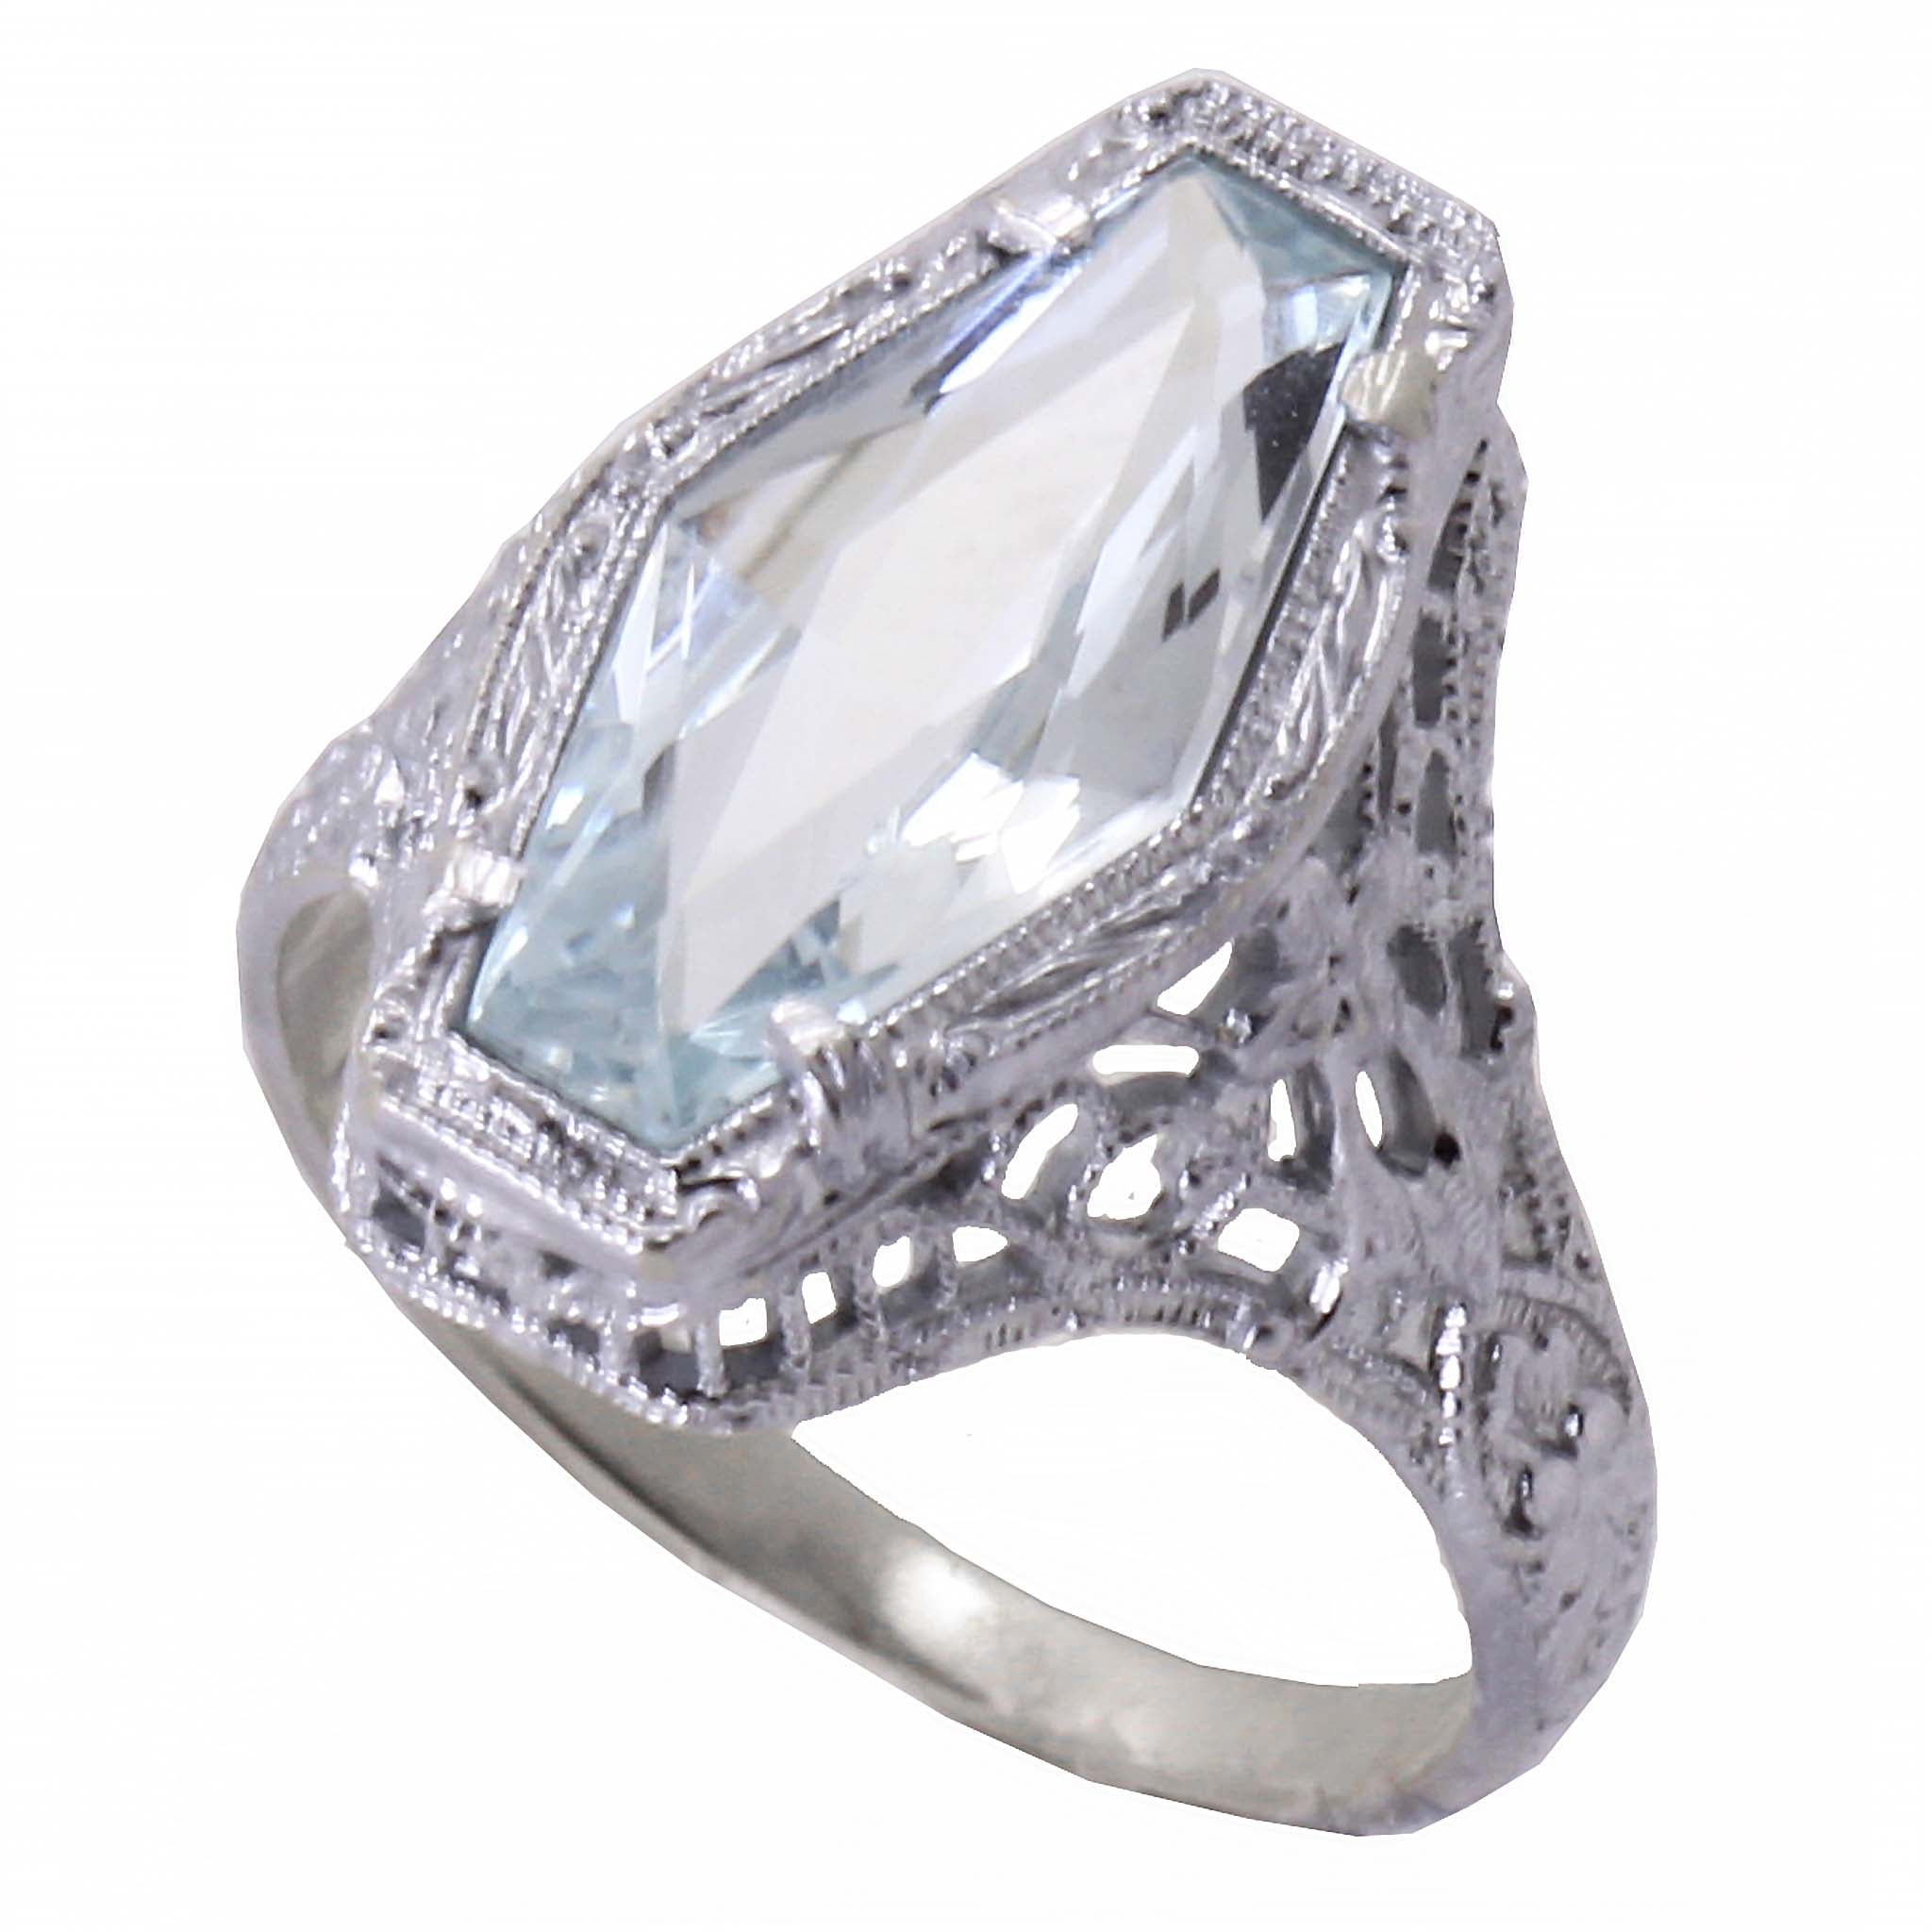 Art Deco 14k White Gold Filigree and Aquamarine Ring Front